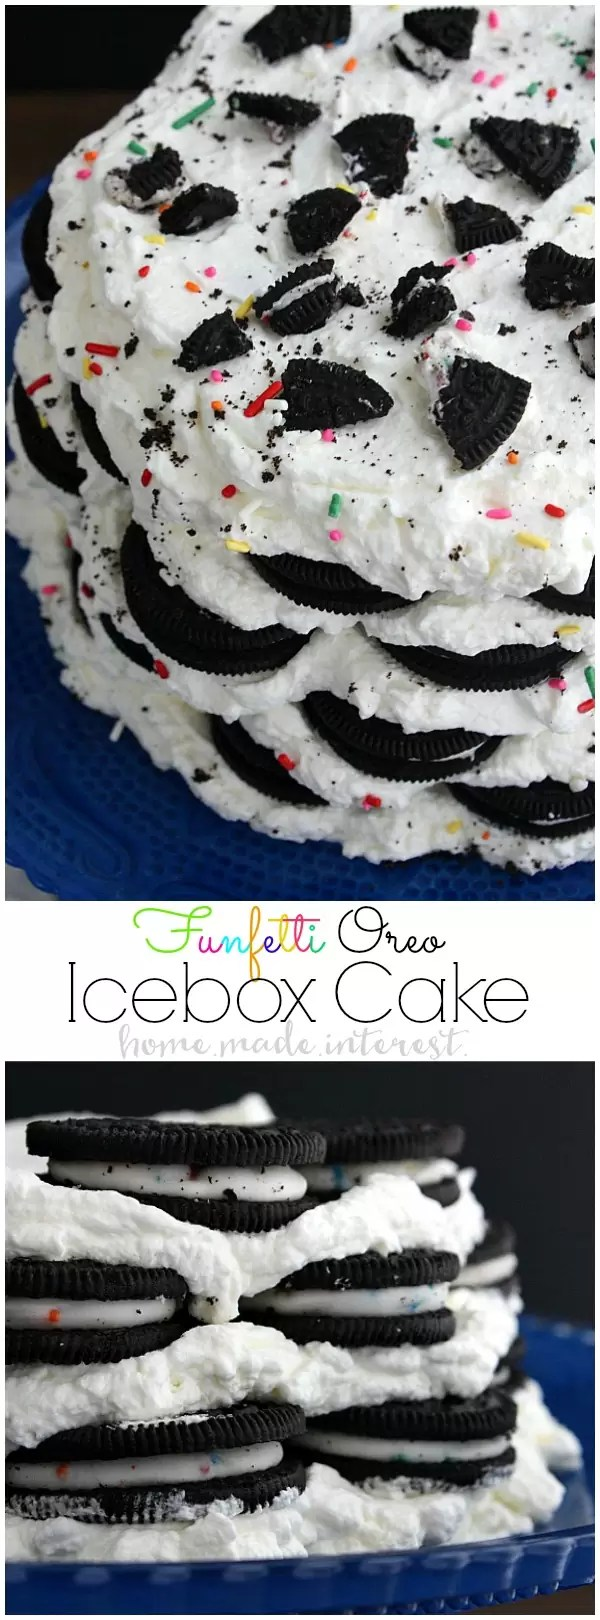 This Funfetti Oreo Icebox Cake is a no bake cake made with layers of whipped cream and Oreos. It is an easy cake recipe that everyone will love! I can't get enough Oreos so this is my favorite birthday cake recipe. We even have a quick and easy tutorial on how to make a cake stand from thrift store items. It is such a simple way to make a personalized birthday gift for a friend complete with an Oreo Icebox Cake on top!!